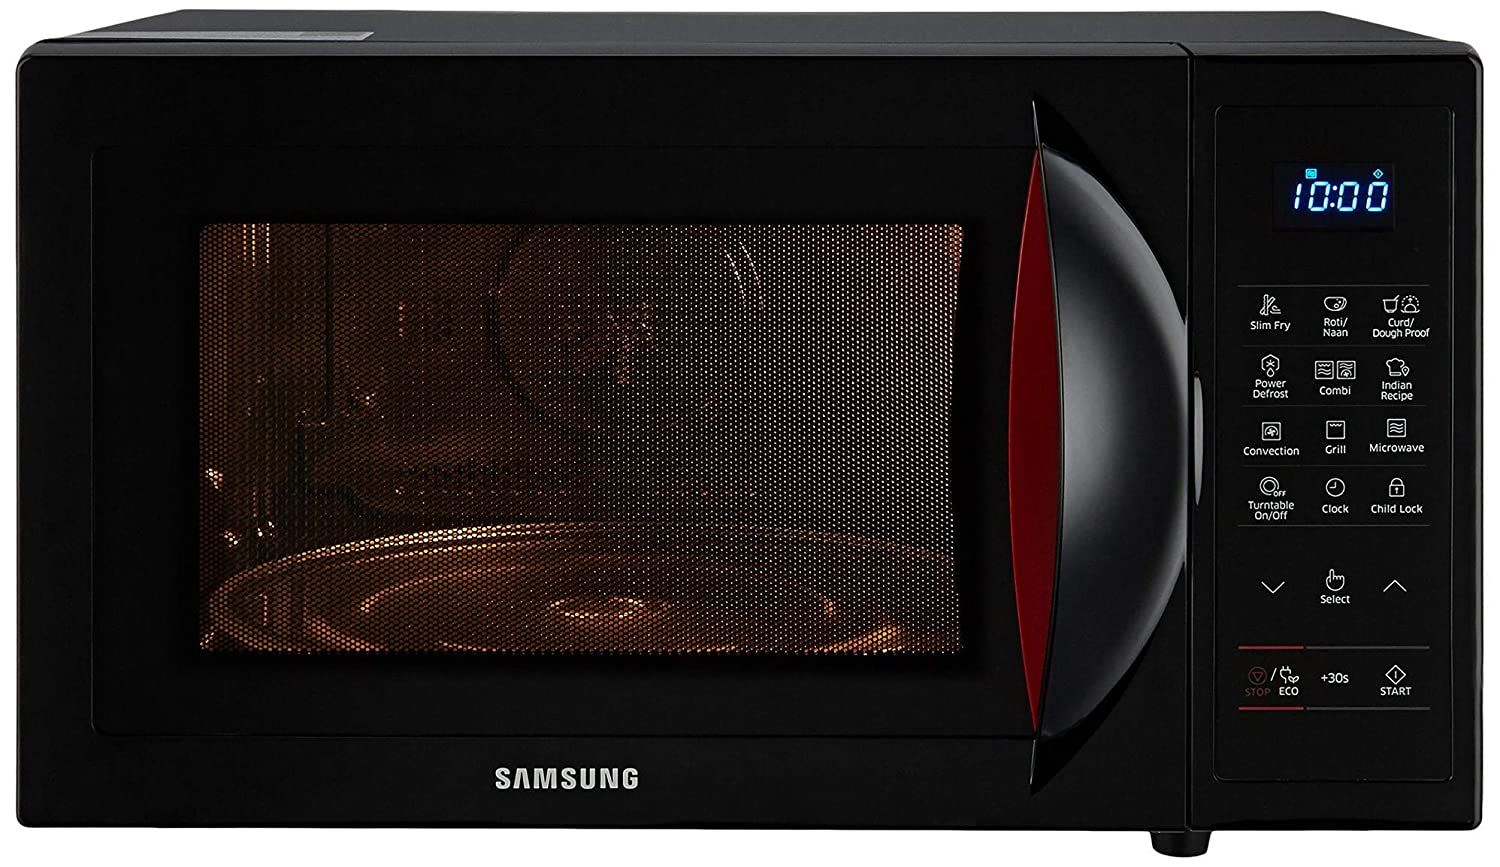 Samsung 28 L Convection Microwave Oven Full Review In 2020 Microwave Convection Oven Convection Microwaves Convection